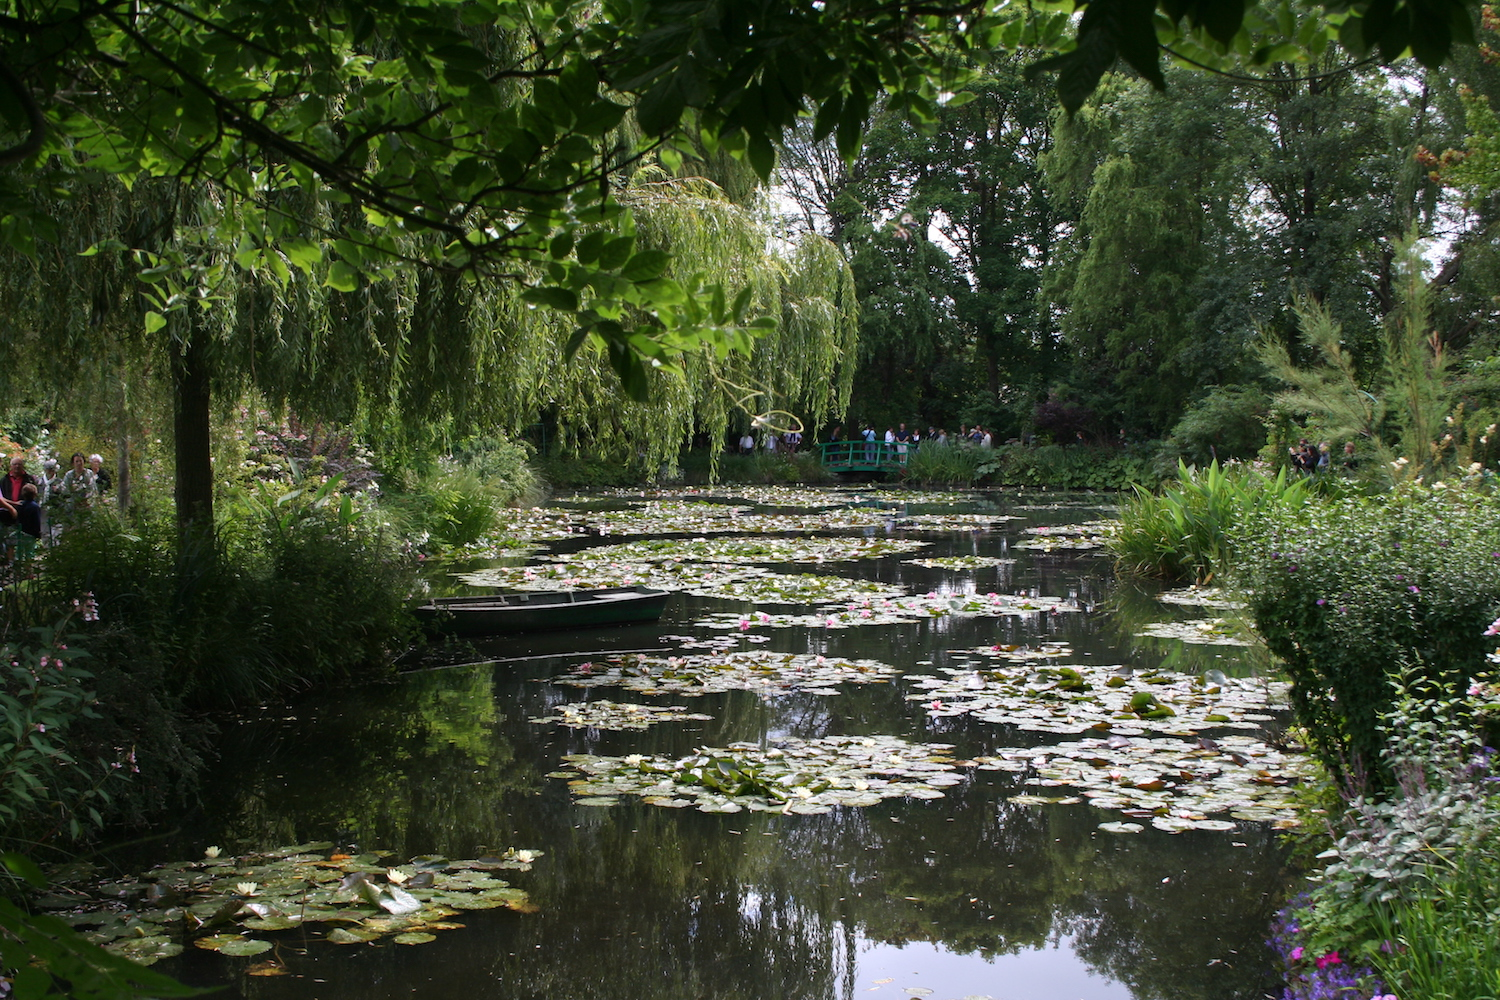 pond at Monet's garden in France